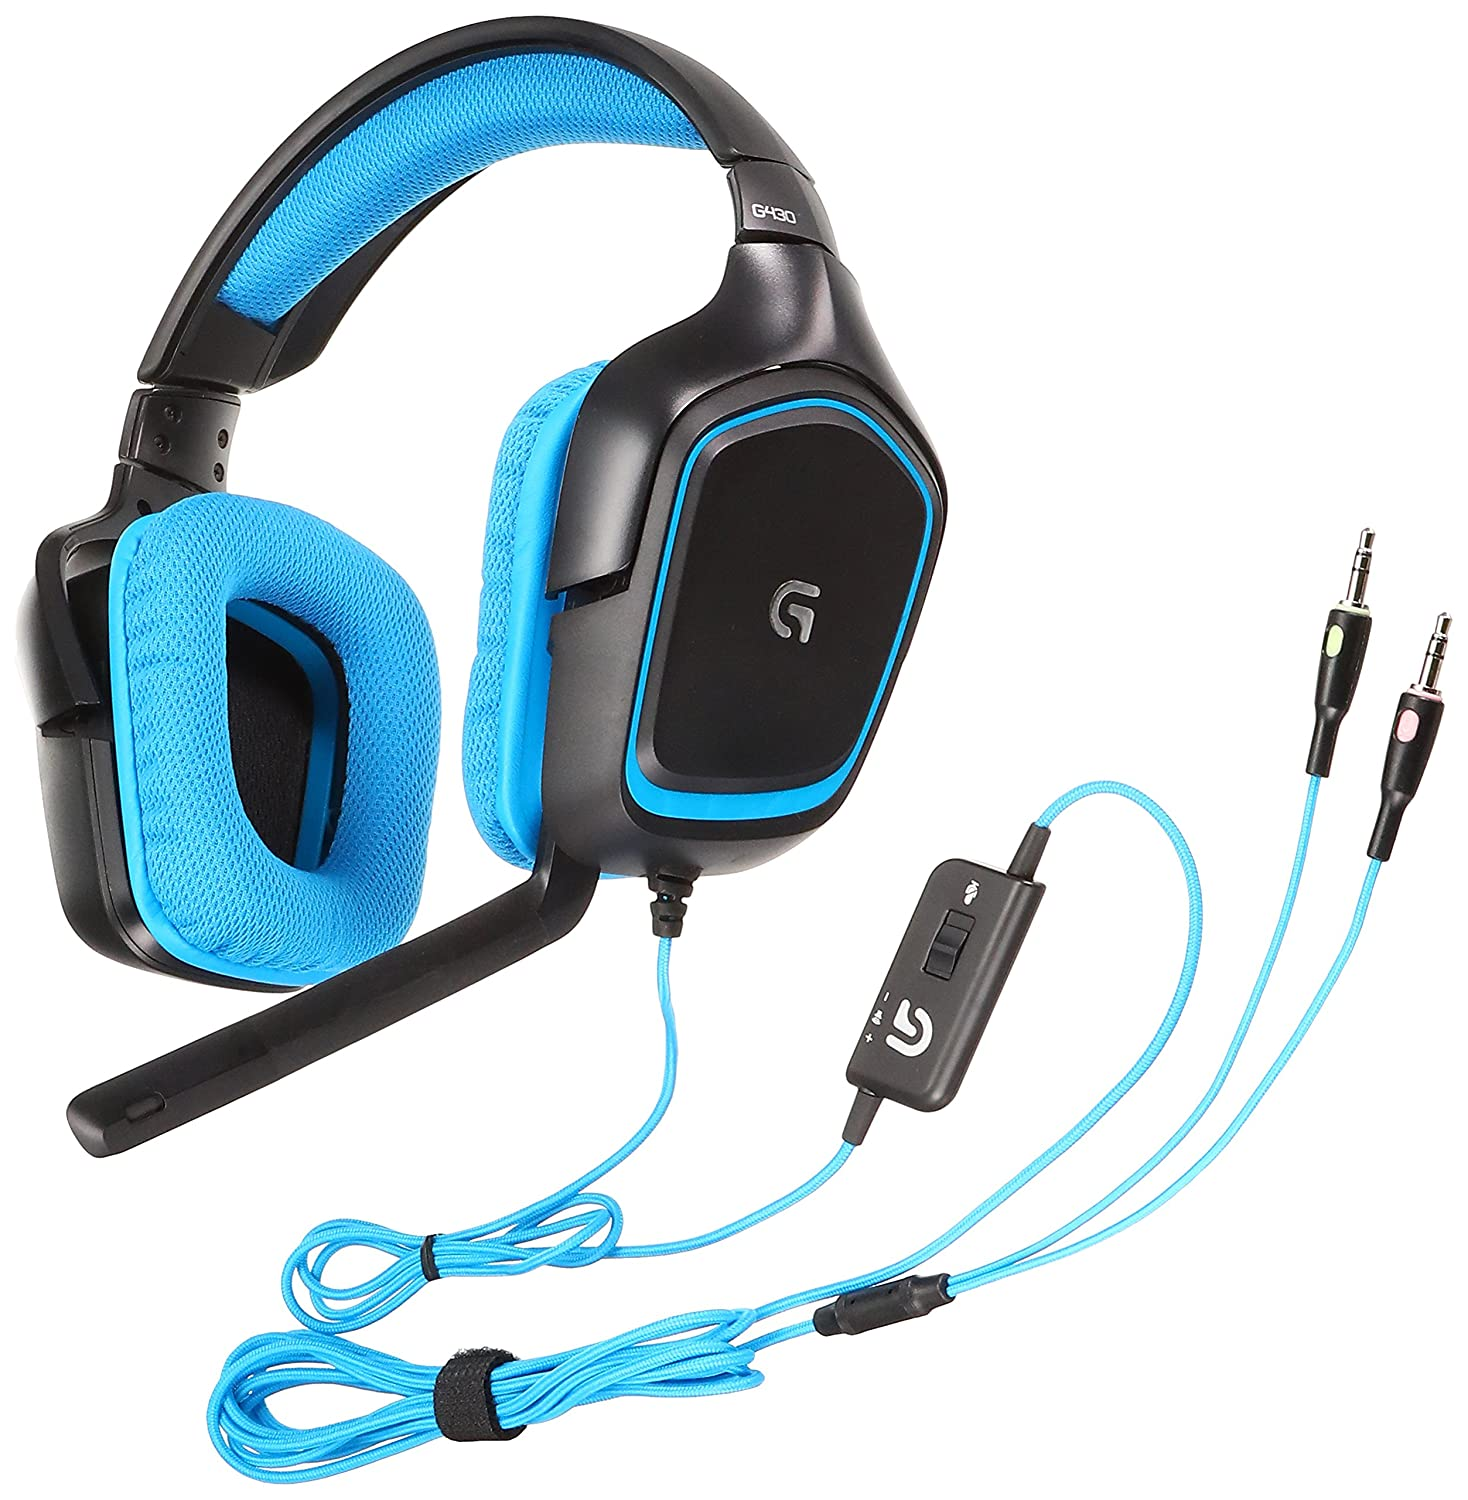 ebdfa1bf179 Amazon.com: LOGICOOL earpads for Surround Sound Gaming Headset G430:  Computers & Accessories